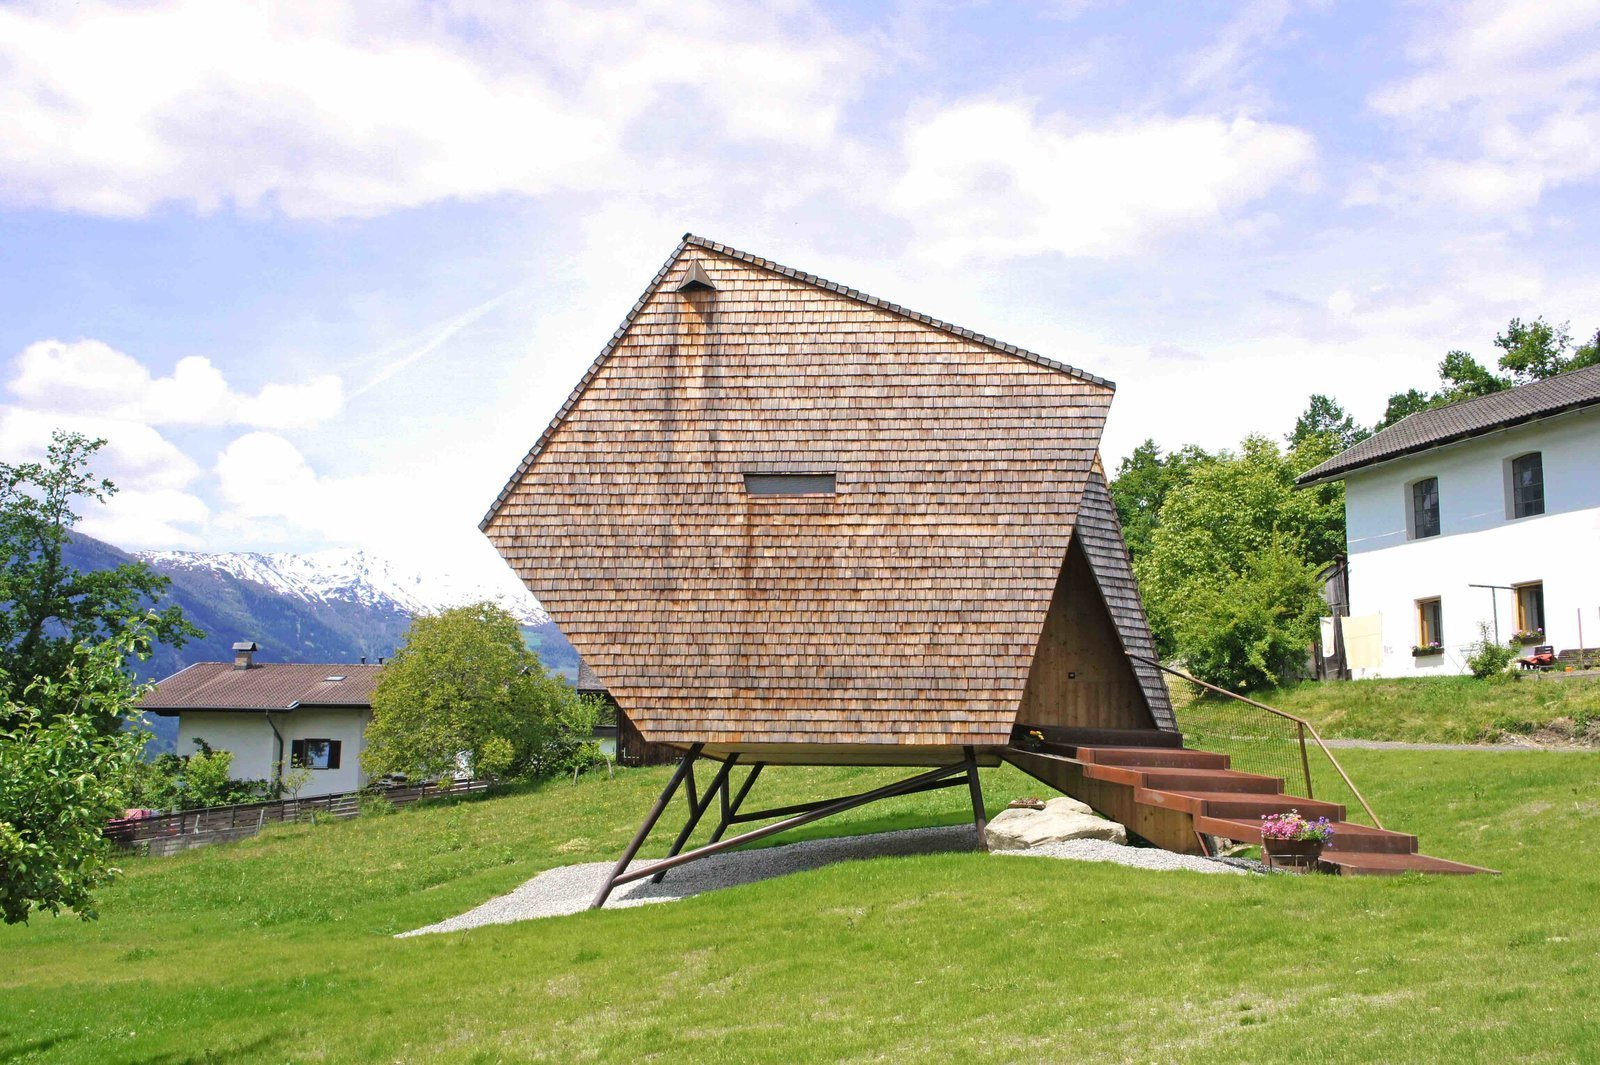 """Because of its irregular, otherworldly form, and how it seems to be suspended in midair, the cabin was named """"Ufogel,"""" which is a melding of the acronym UFO and """"vogel,"""" meaning bird in German."""